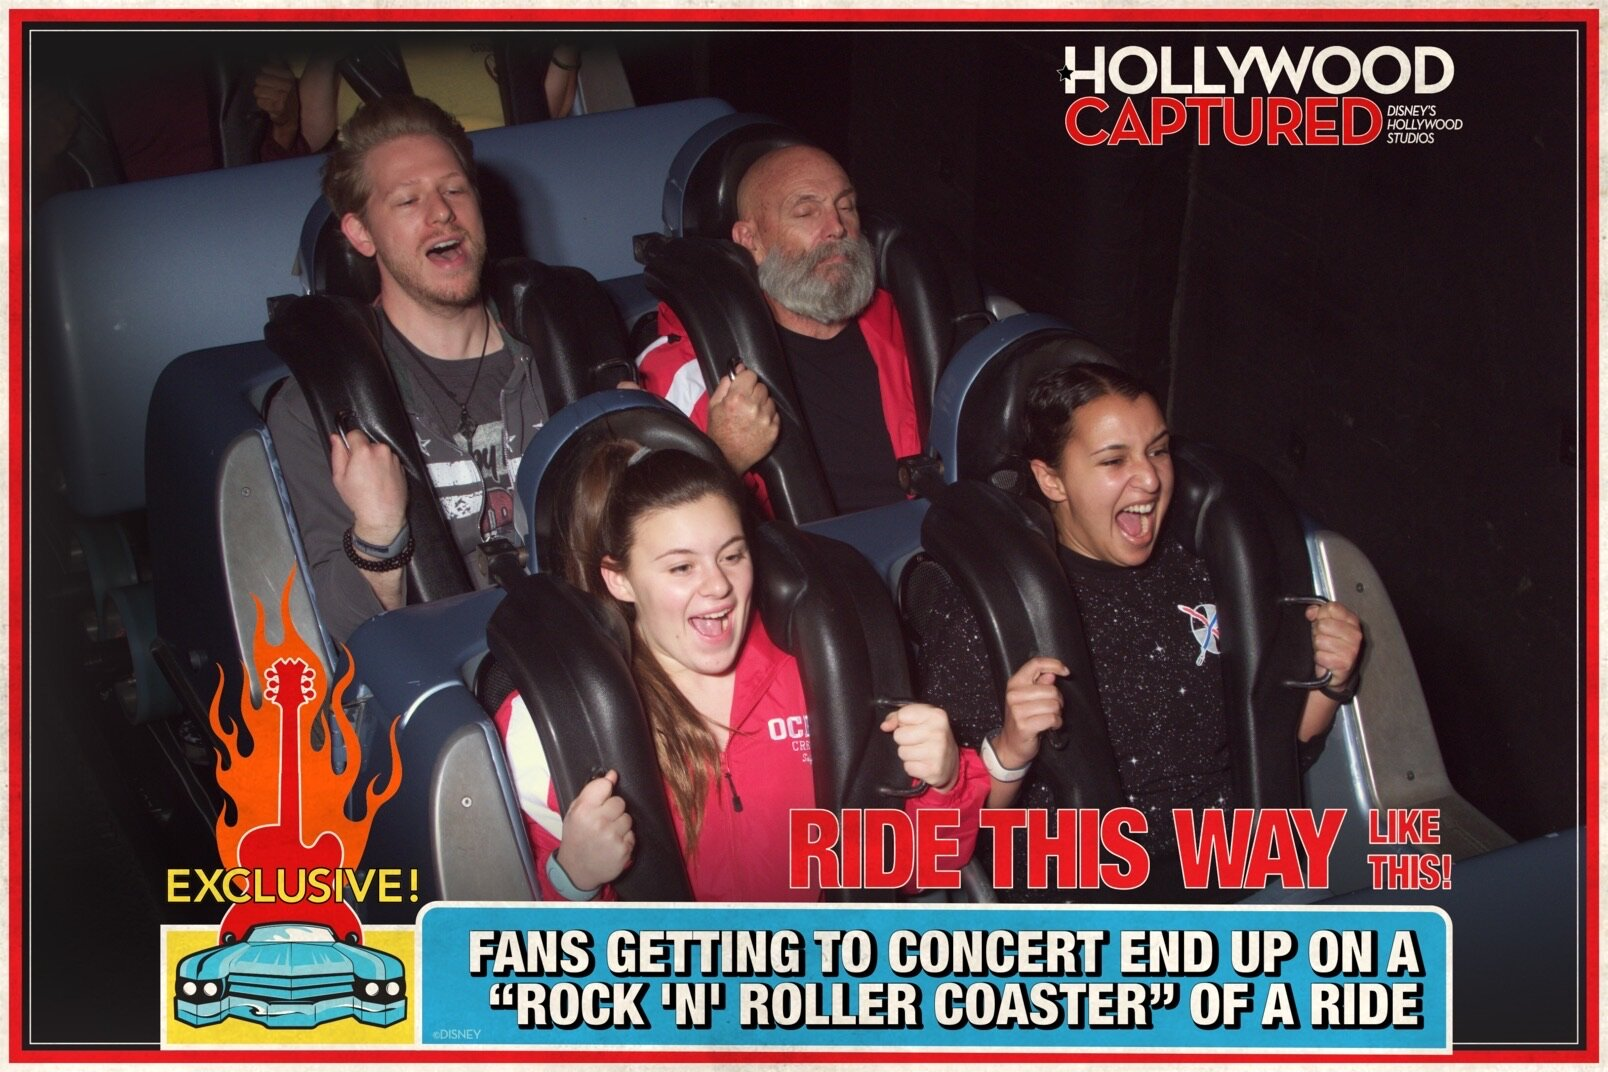 One day, I will not look terrified on Rock n' Roller Coaster at Disney's Hollywood Studios!